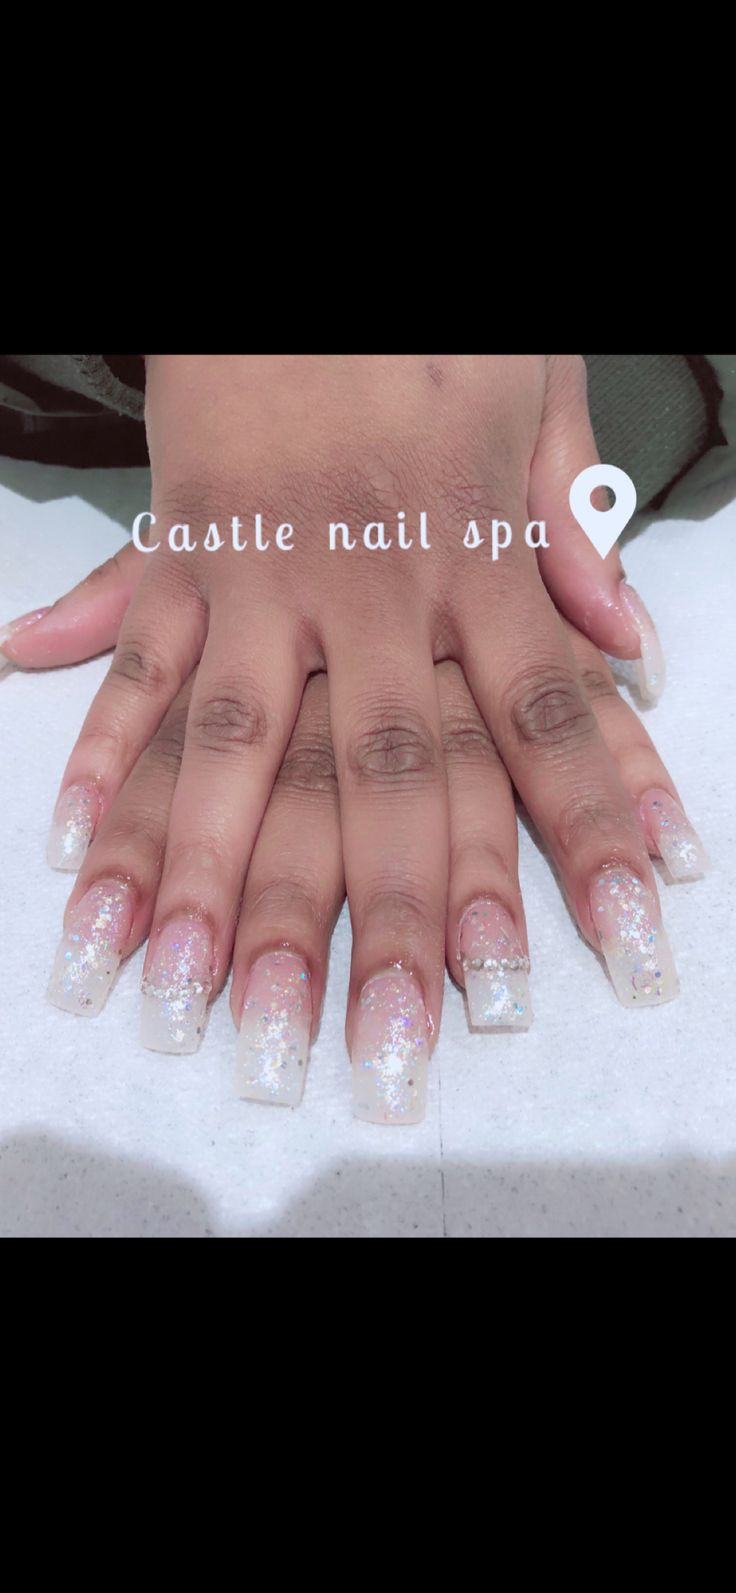 11 best Castle Nail Spa-Nail Art images on Pinterest | Nail spa ...